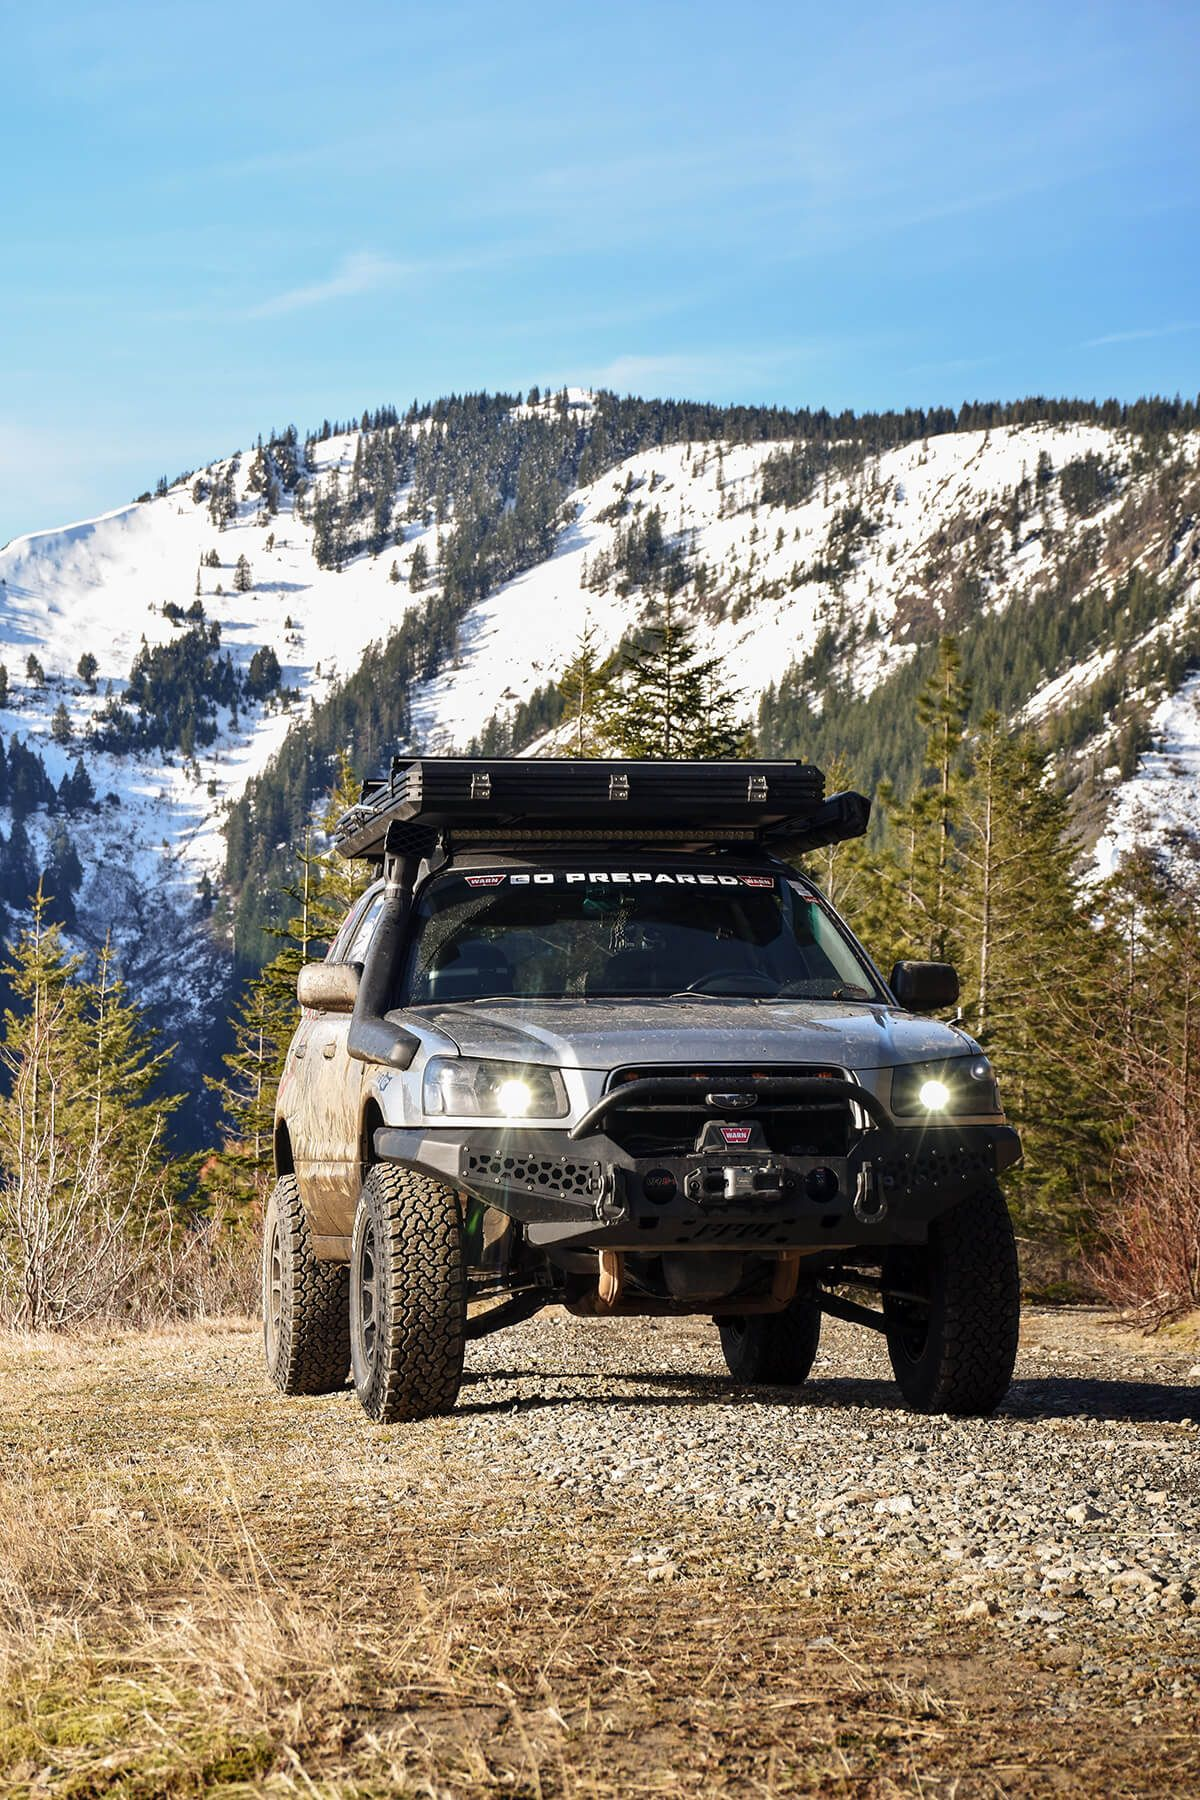 How To Turn A Subaru Forester Xs Wagon Into A Lifted Off Road Rig Subaru Forester Subaru Outback Offroad Subaru Forester Lifted